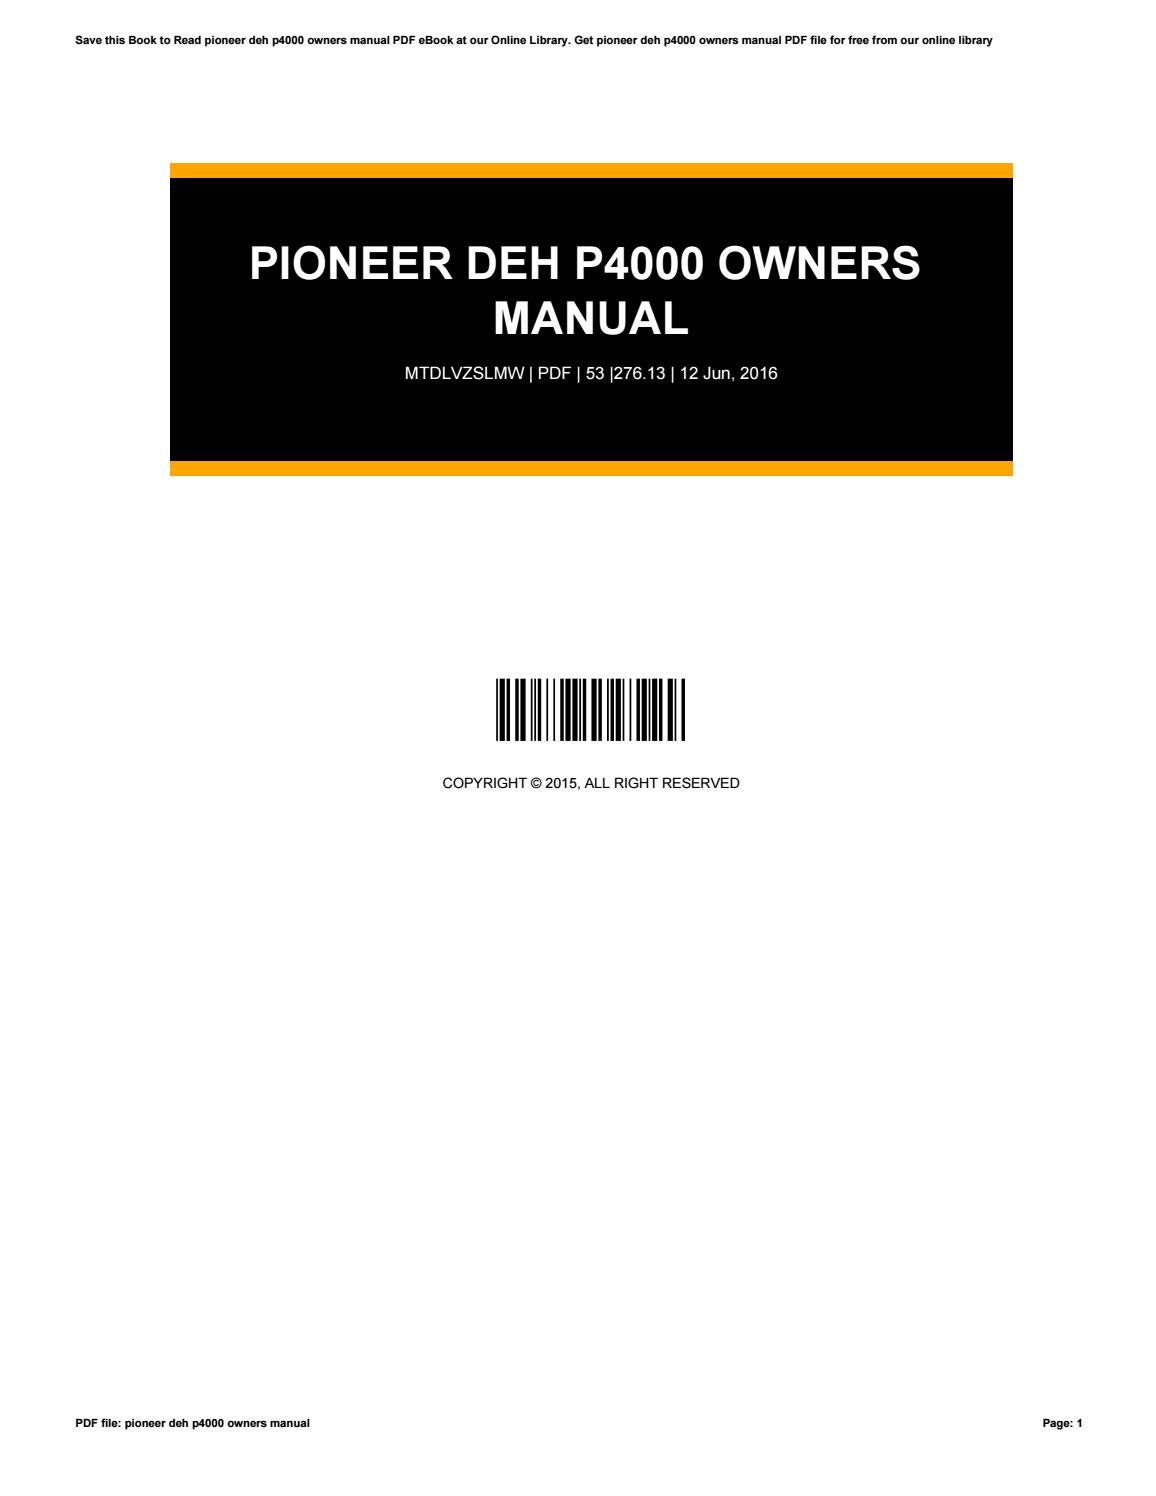 pioneer deh p4000 owners manual by anissa35ningtyas issuu rh issuu com pioneer deh p4000ub installation manual pioneer deh-p4000ub manual pdf